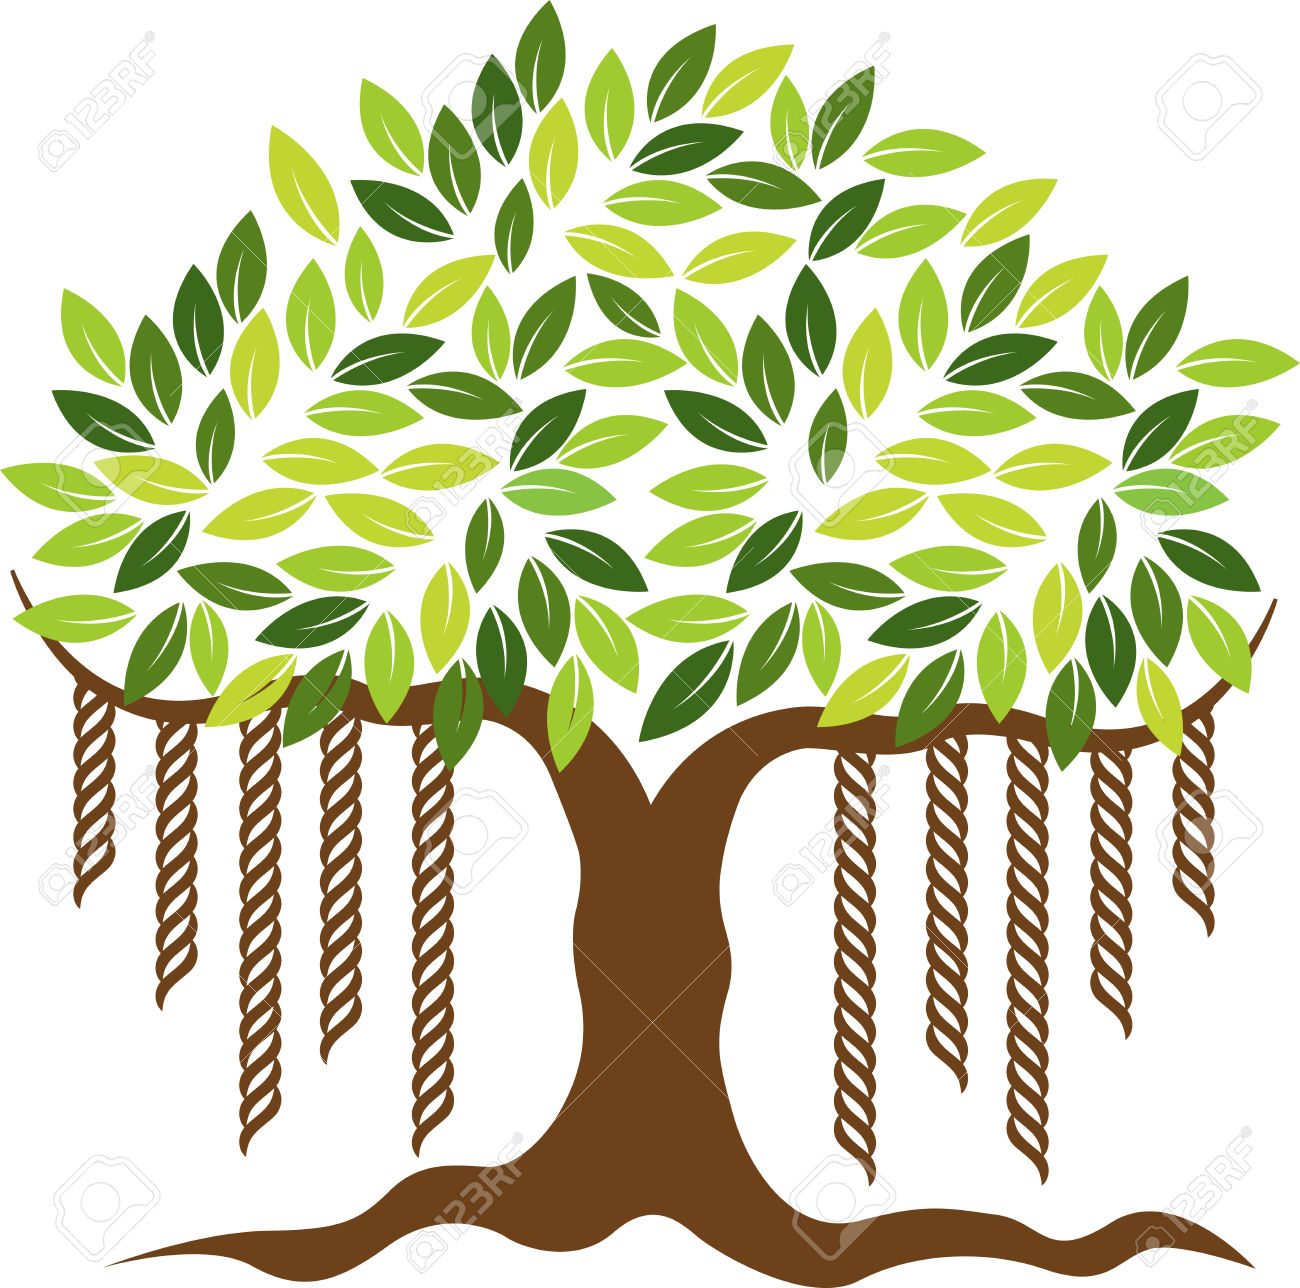 Banyan tree clipart 1 » Clipart Station.